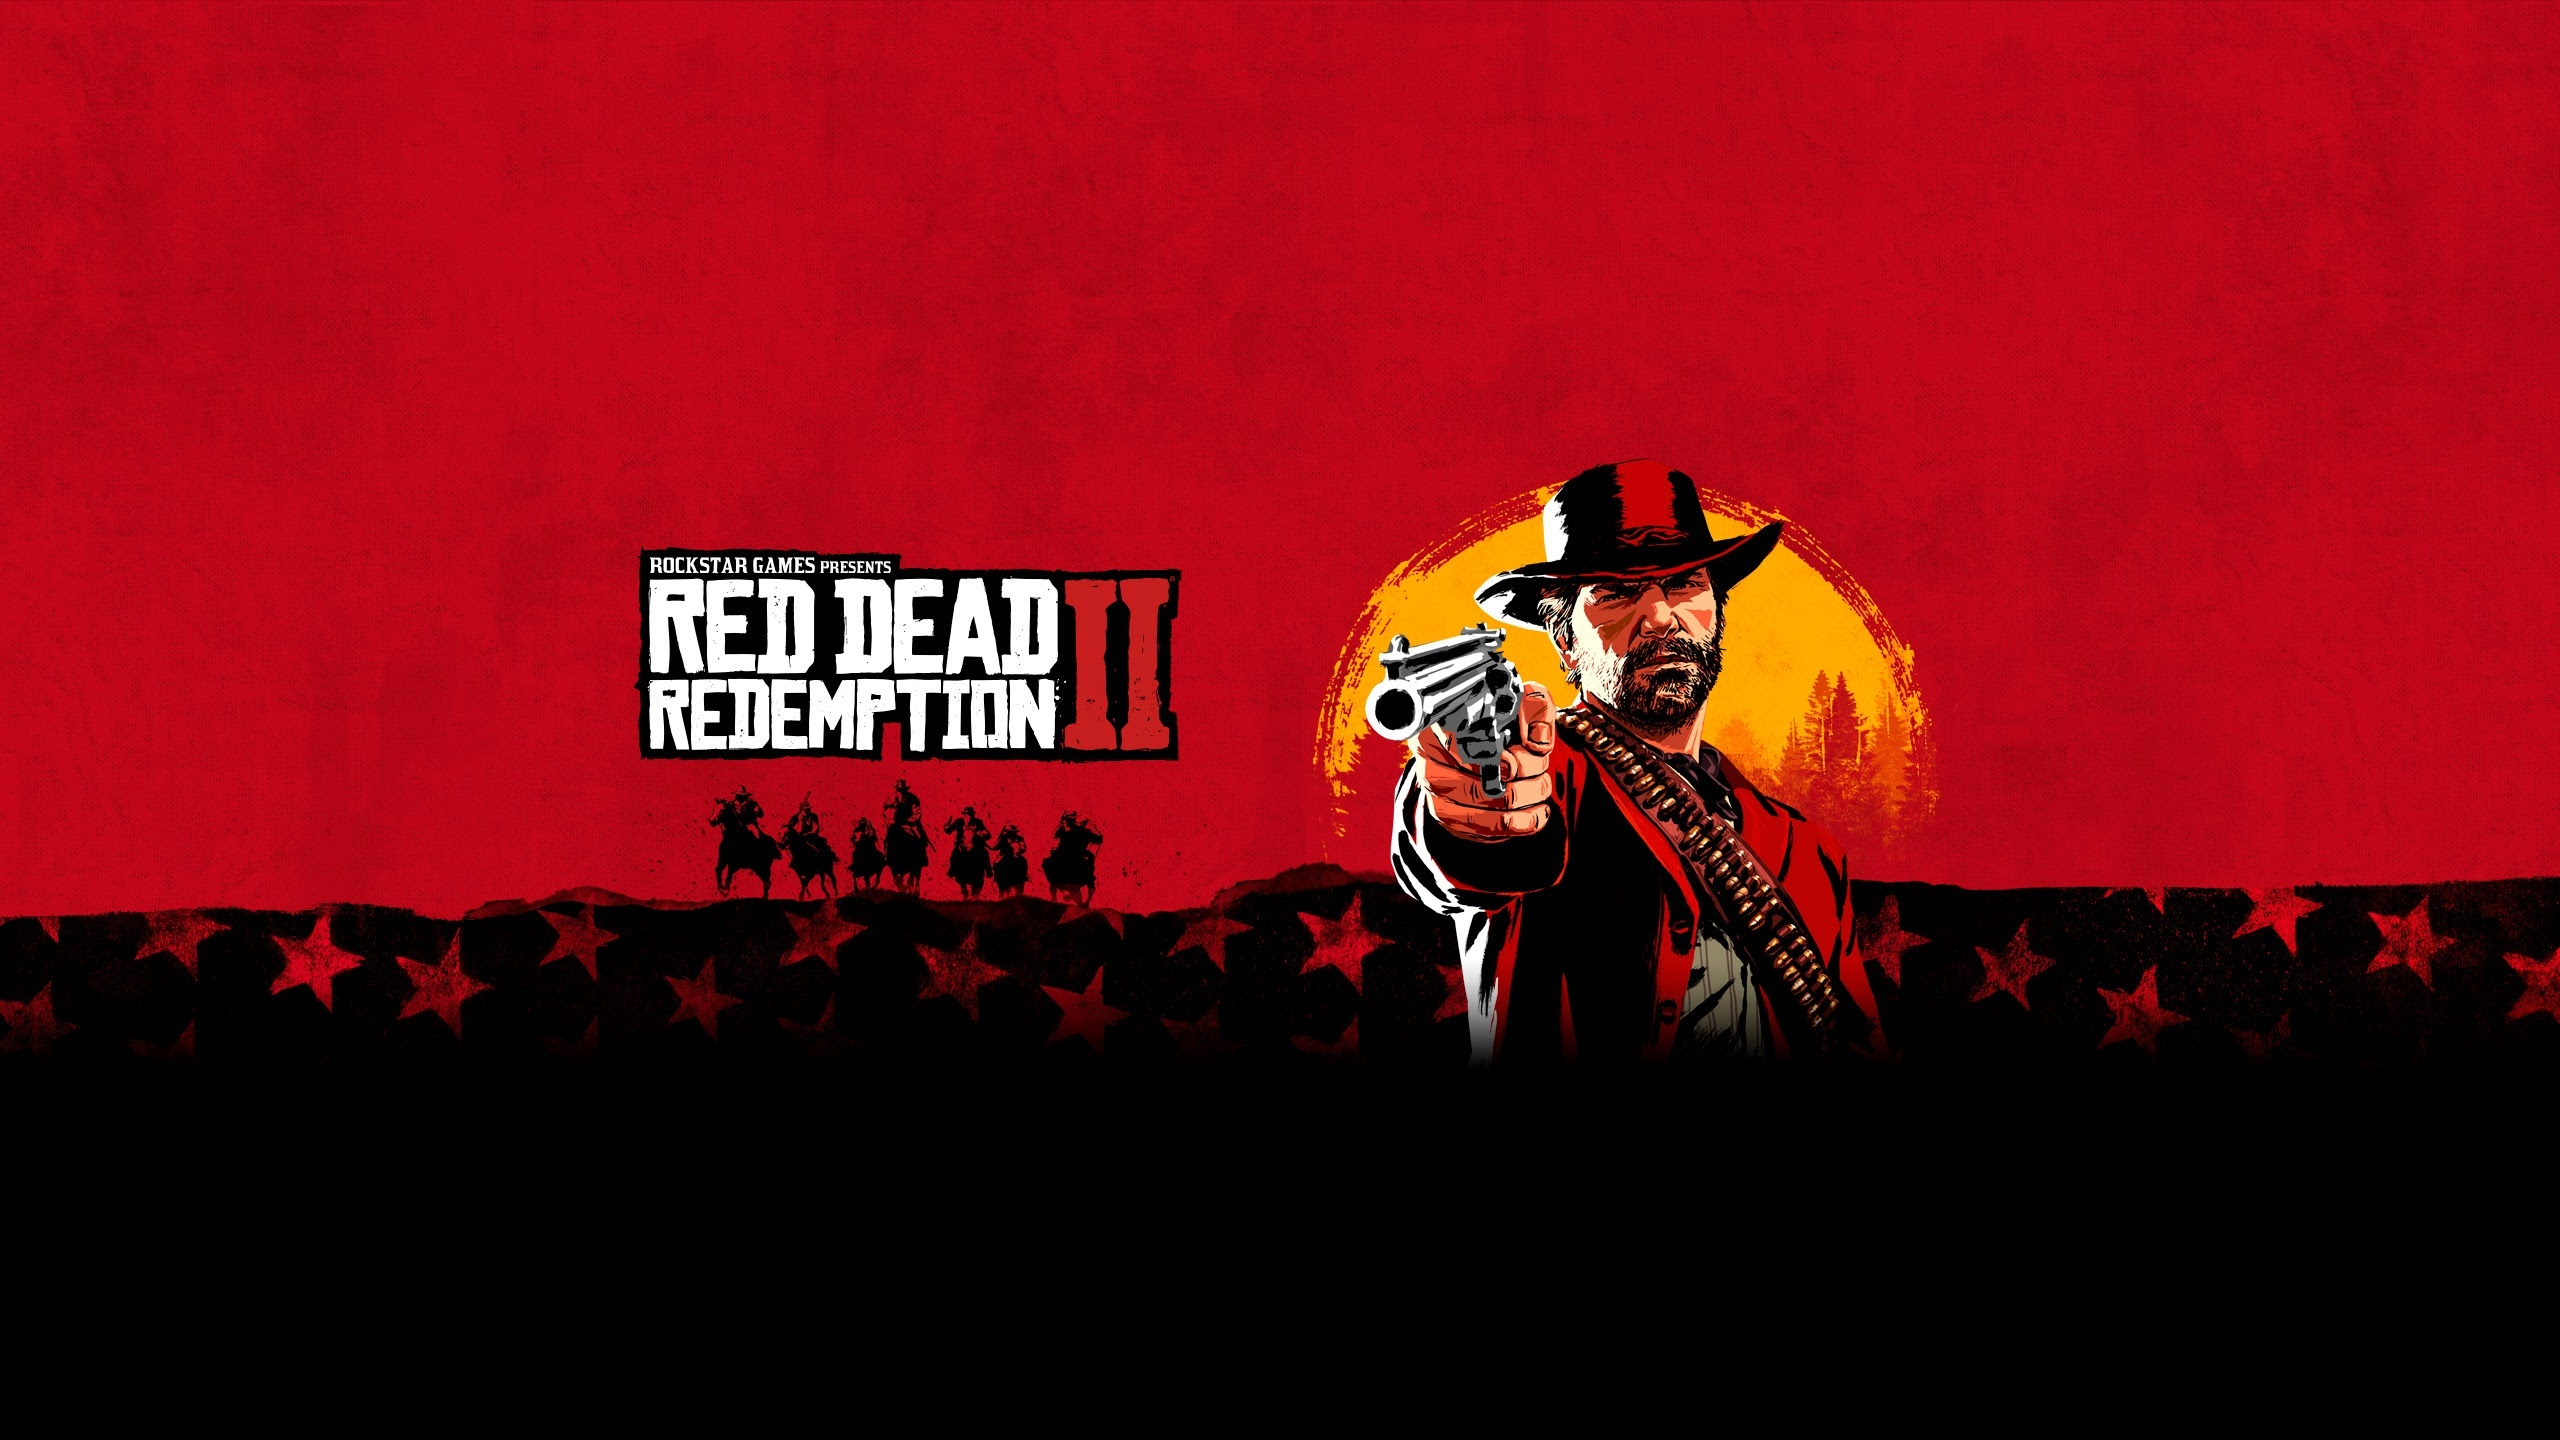 Red Dead Redemption 2 4k Wallpaper: Red Dead Redemption 2, HD Games, 4k Wallpapers, Images